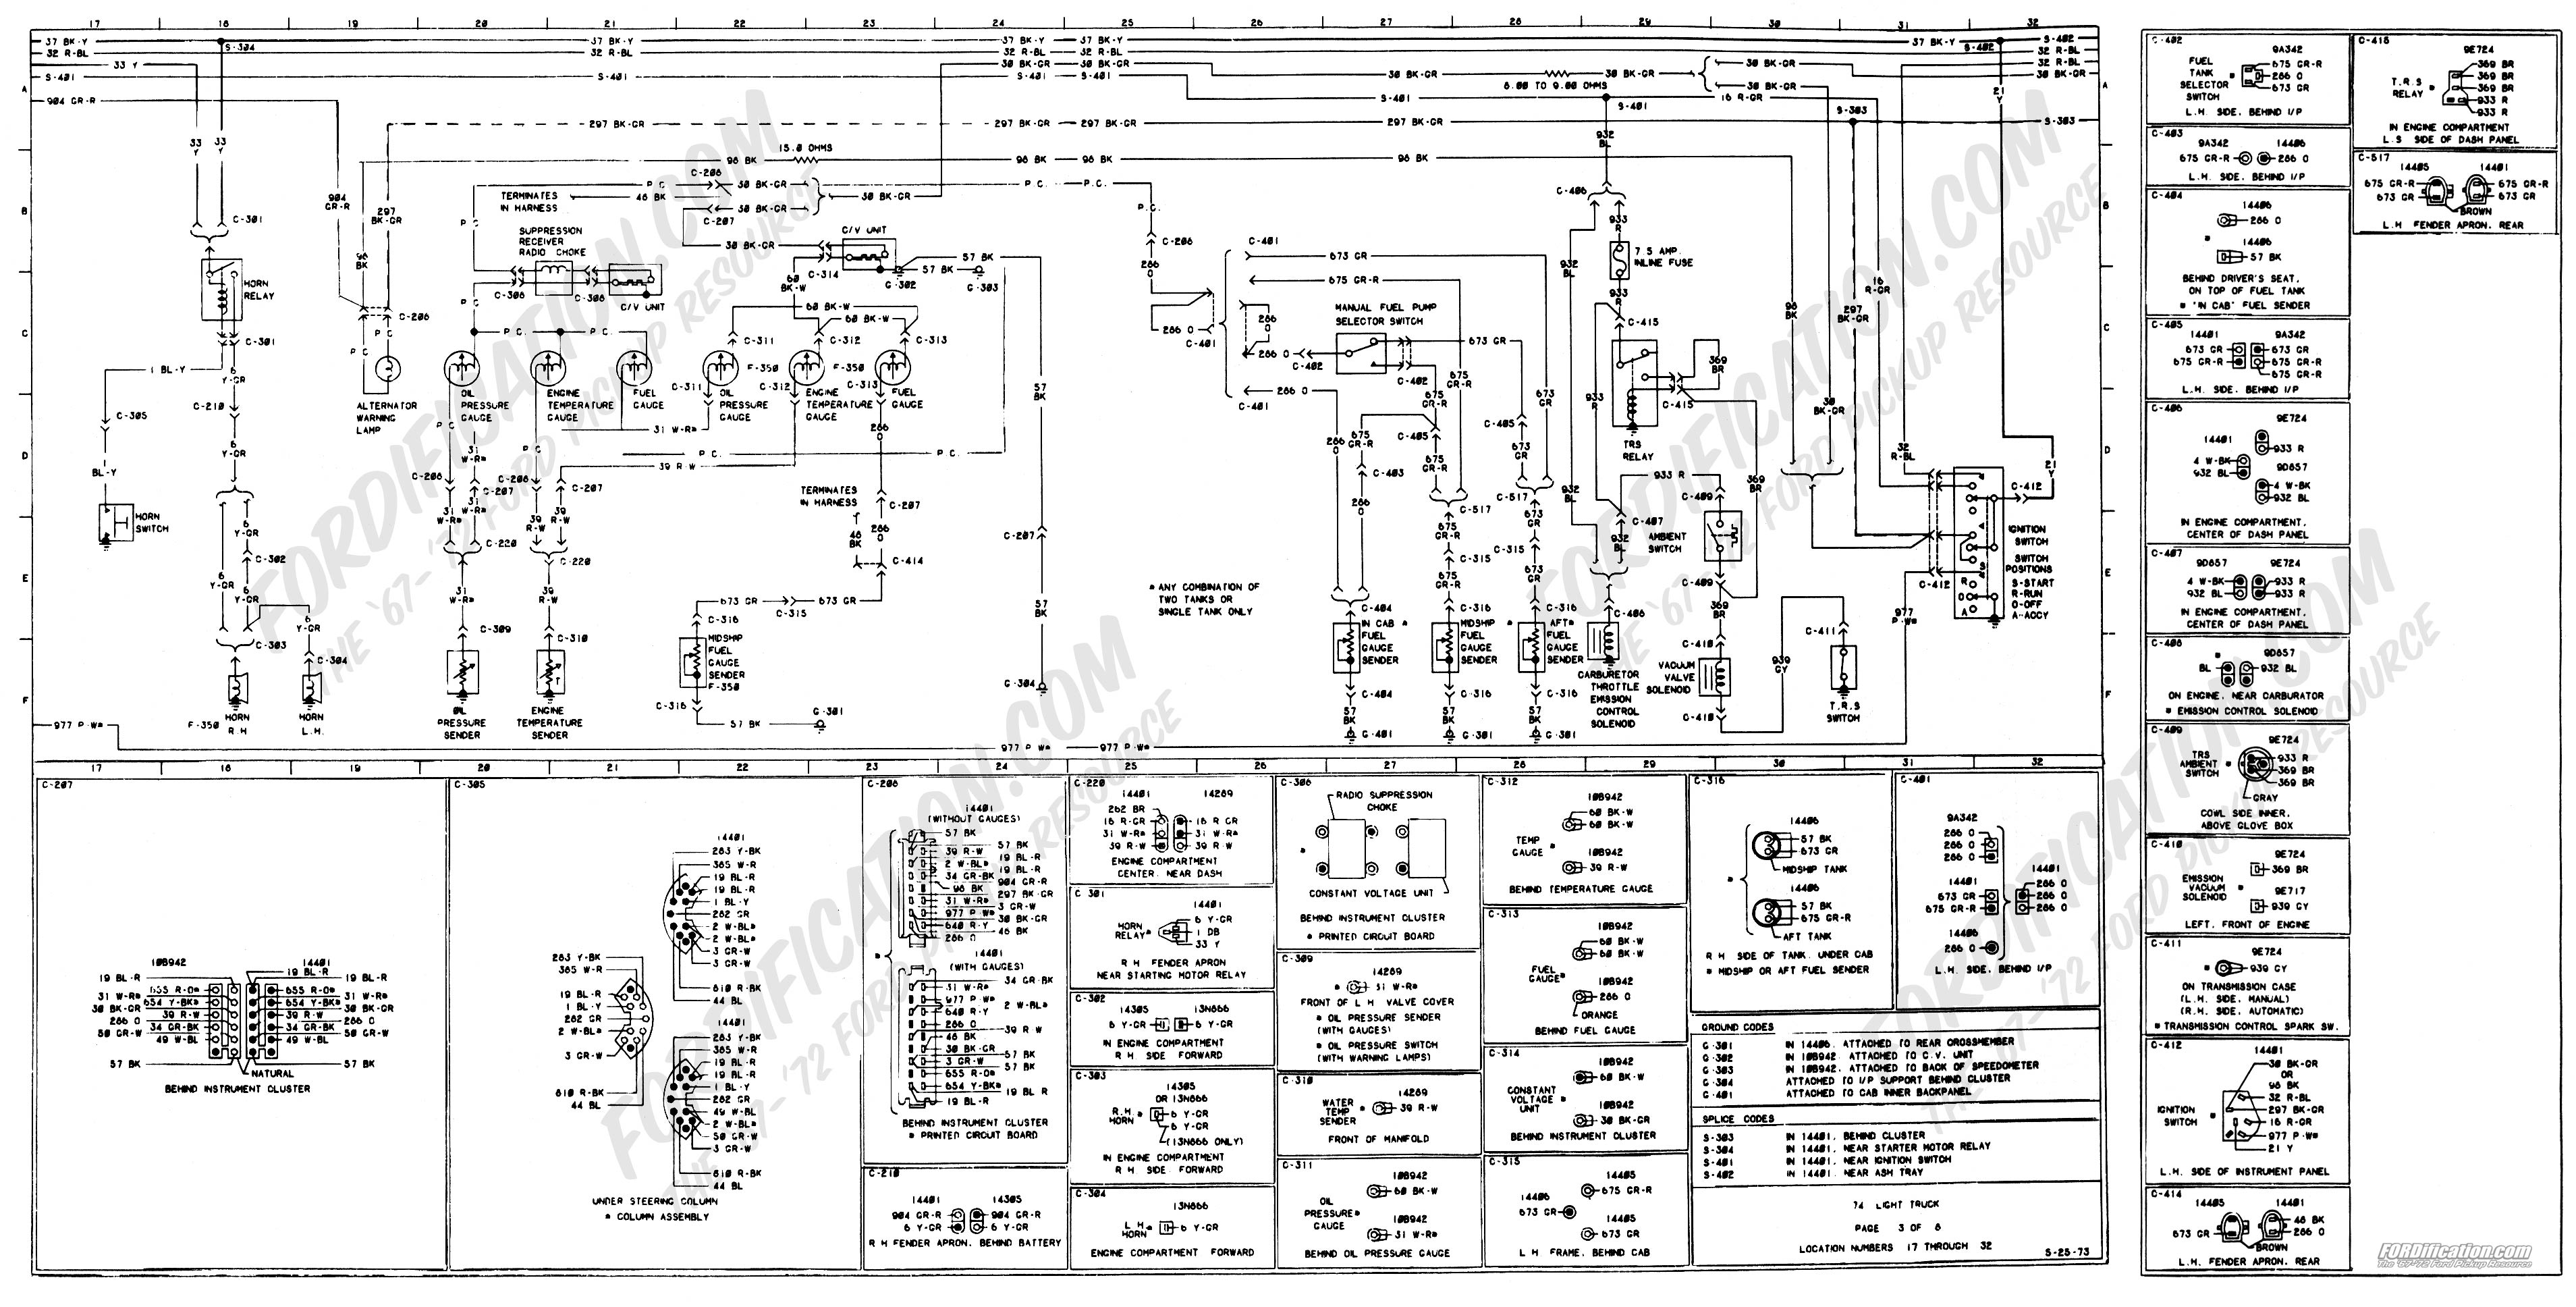 wiring_74master_3of8 1973 1979 ford truck wiring diagrams & schematics fordification net Ford F-250 Wiring Diagram at honlapkeszites.co